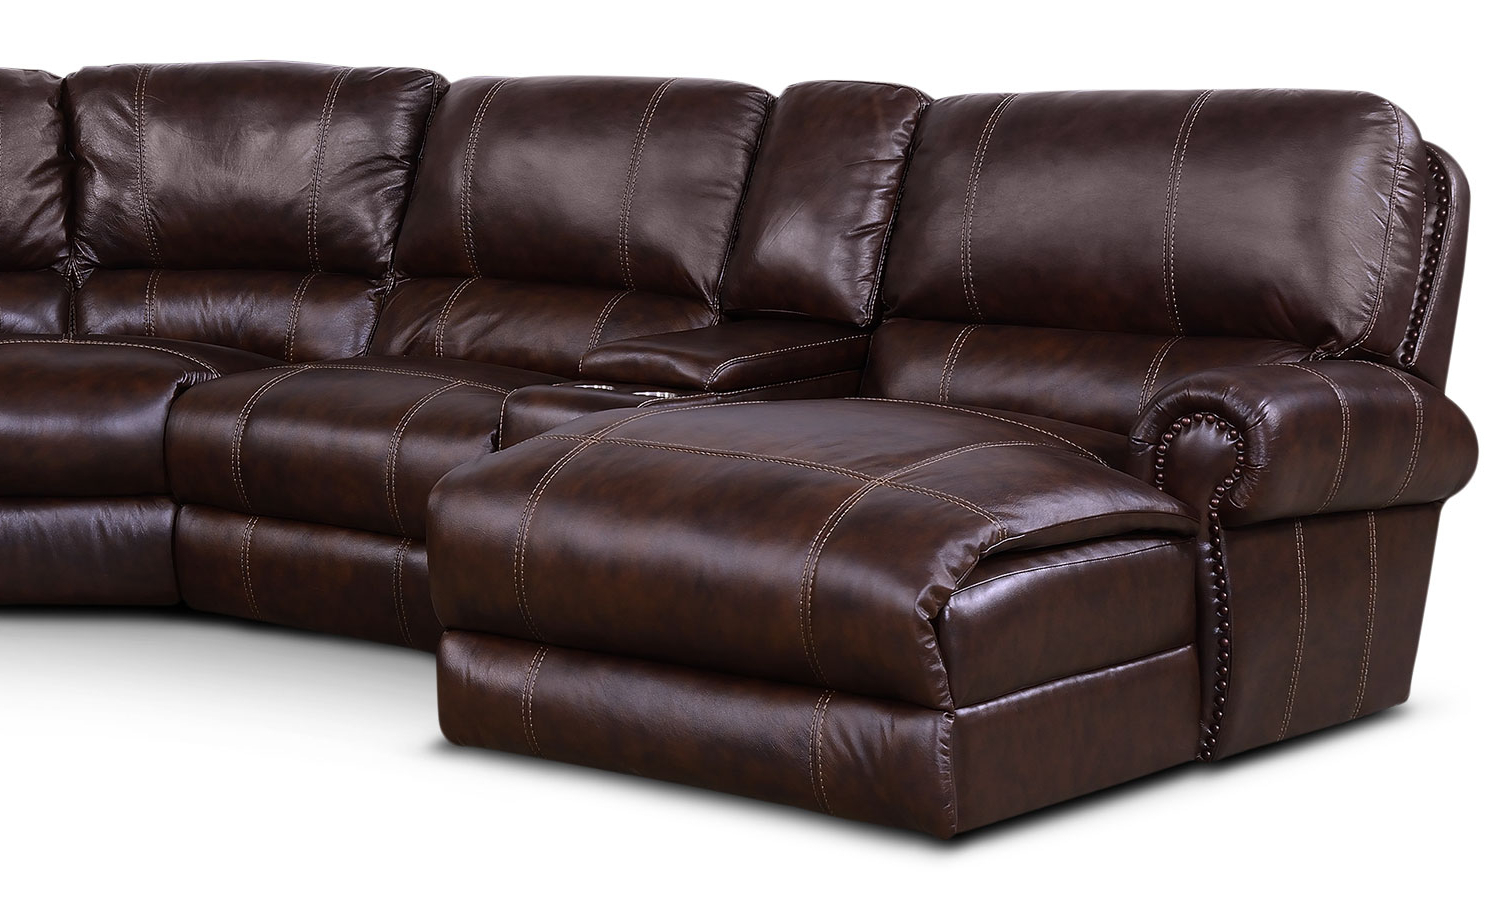 Norfolk Chocolate 6 Piece Sectionals With Raf Chaise For Widely Used Dartmouth 6 Piece Power Reclining Sectional With 2 Reclining Seats (Gallery 2 of 20)